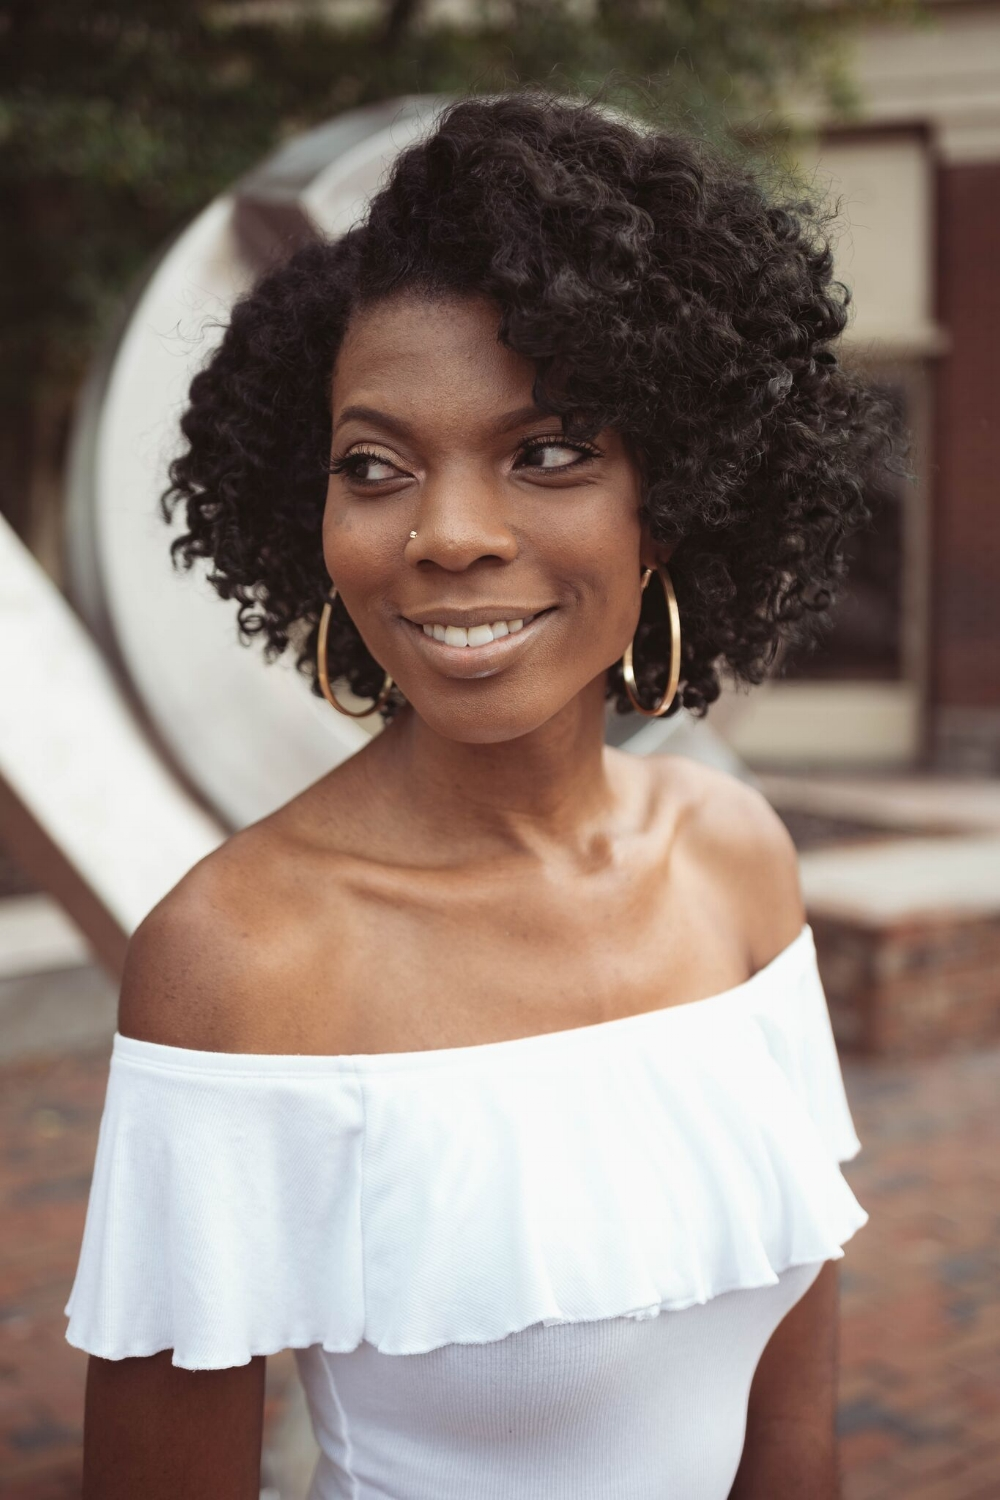 Meet Meelah - Jameelah is the founder of TEXTURE Hair Care (THC) of Fayetteville, NC, who considers herself a curl consultant and coach. She is both an alumni of Fayetteville State University and Paul Mitchell the School with a bachelors in Accounting and Cosmetology, respectively. Meelah has close to a decade of experience in the natural hair care world and is dedicated to encouraging, empowering and educating women with curls. From coloring to cutting and back to styling, she takes great pride in not only staying current with new trends but pushing the envelope on what natural hair can be, all while focusing specifically on the integrity and health of the hair.